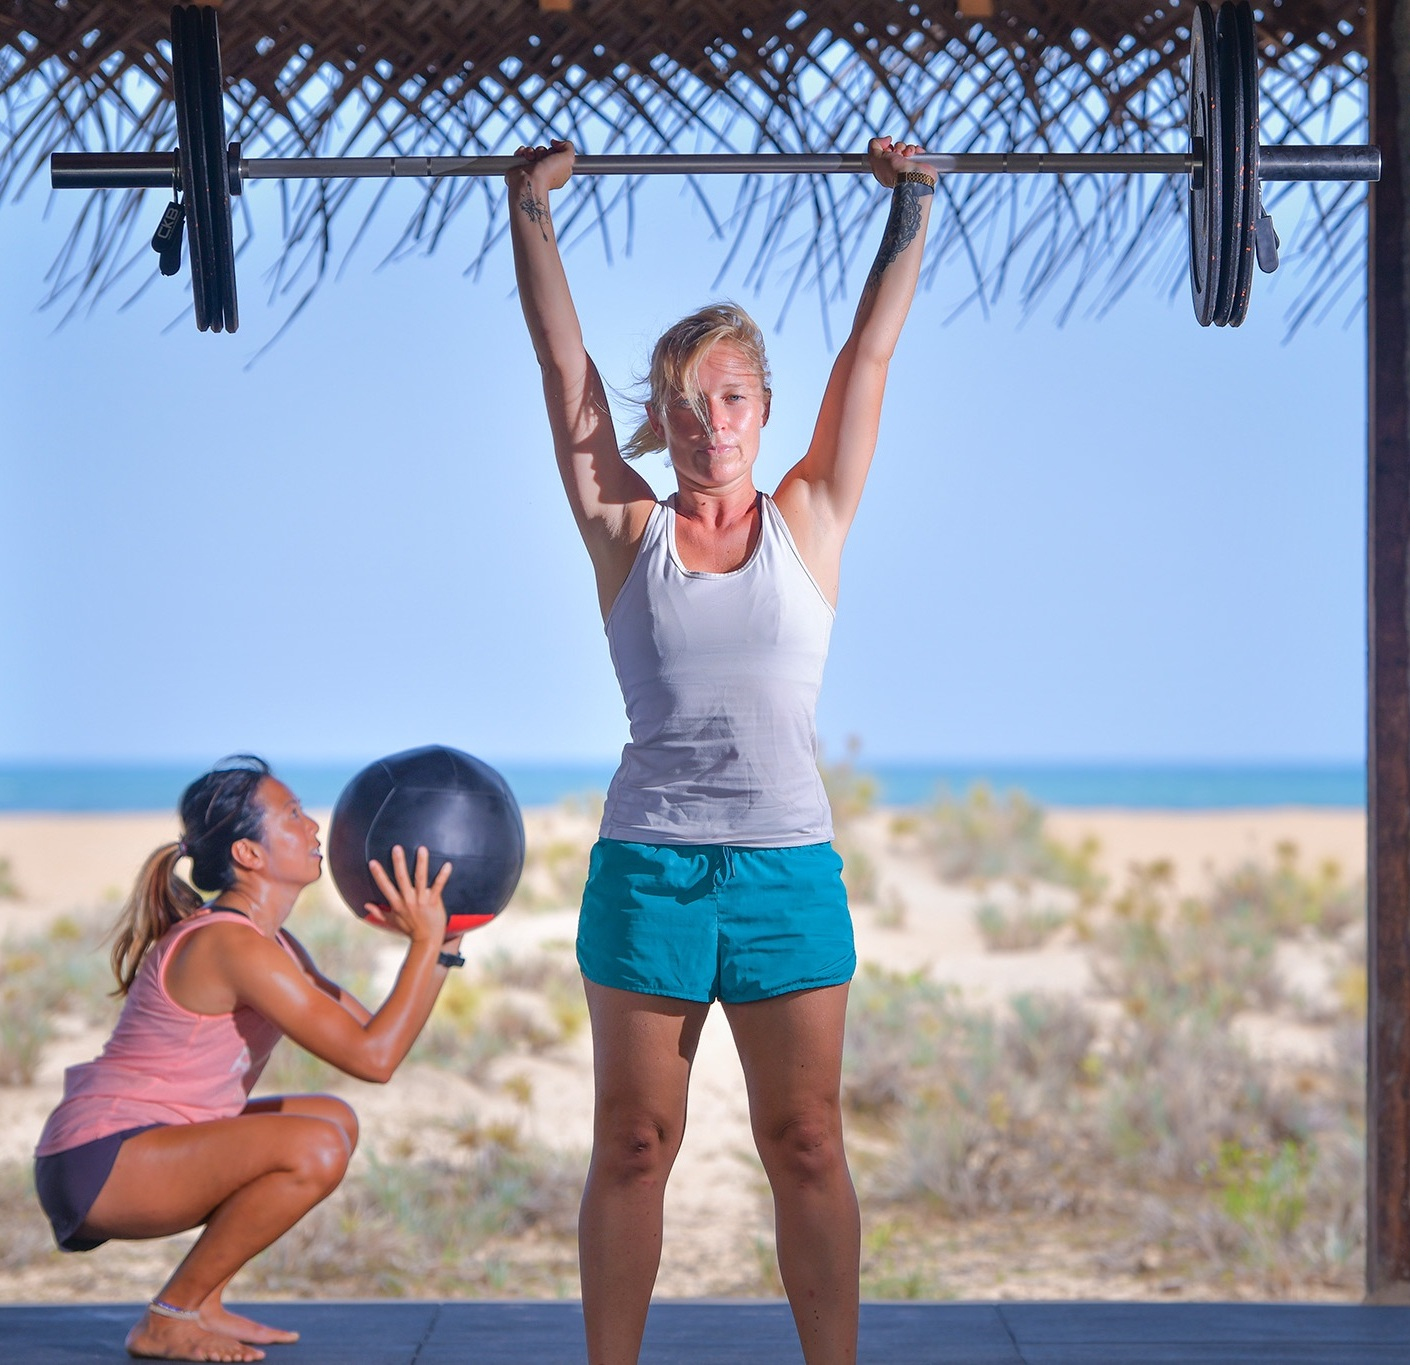 VICTORIA PESTER  FOUNDER & MD  Over 9 years experience of running travel and lifestyle companies in the UK & Asia. Came up with the idea for The BNKR in 2017 inspired by her fitness holidays in Thailand. Certified PT and CrossFit Level 1 Trainer.  Fitness fanatic to counteract passion for wine and all things food! When not busy expanding the BNKR empire, can be found running some of the group classes or running on the beach with her dog Tika.